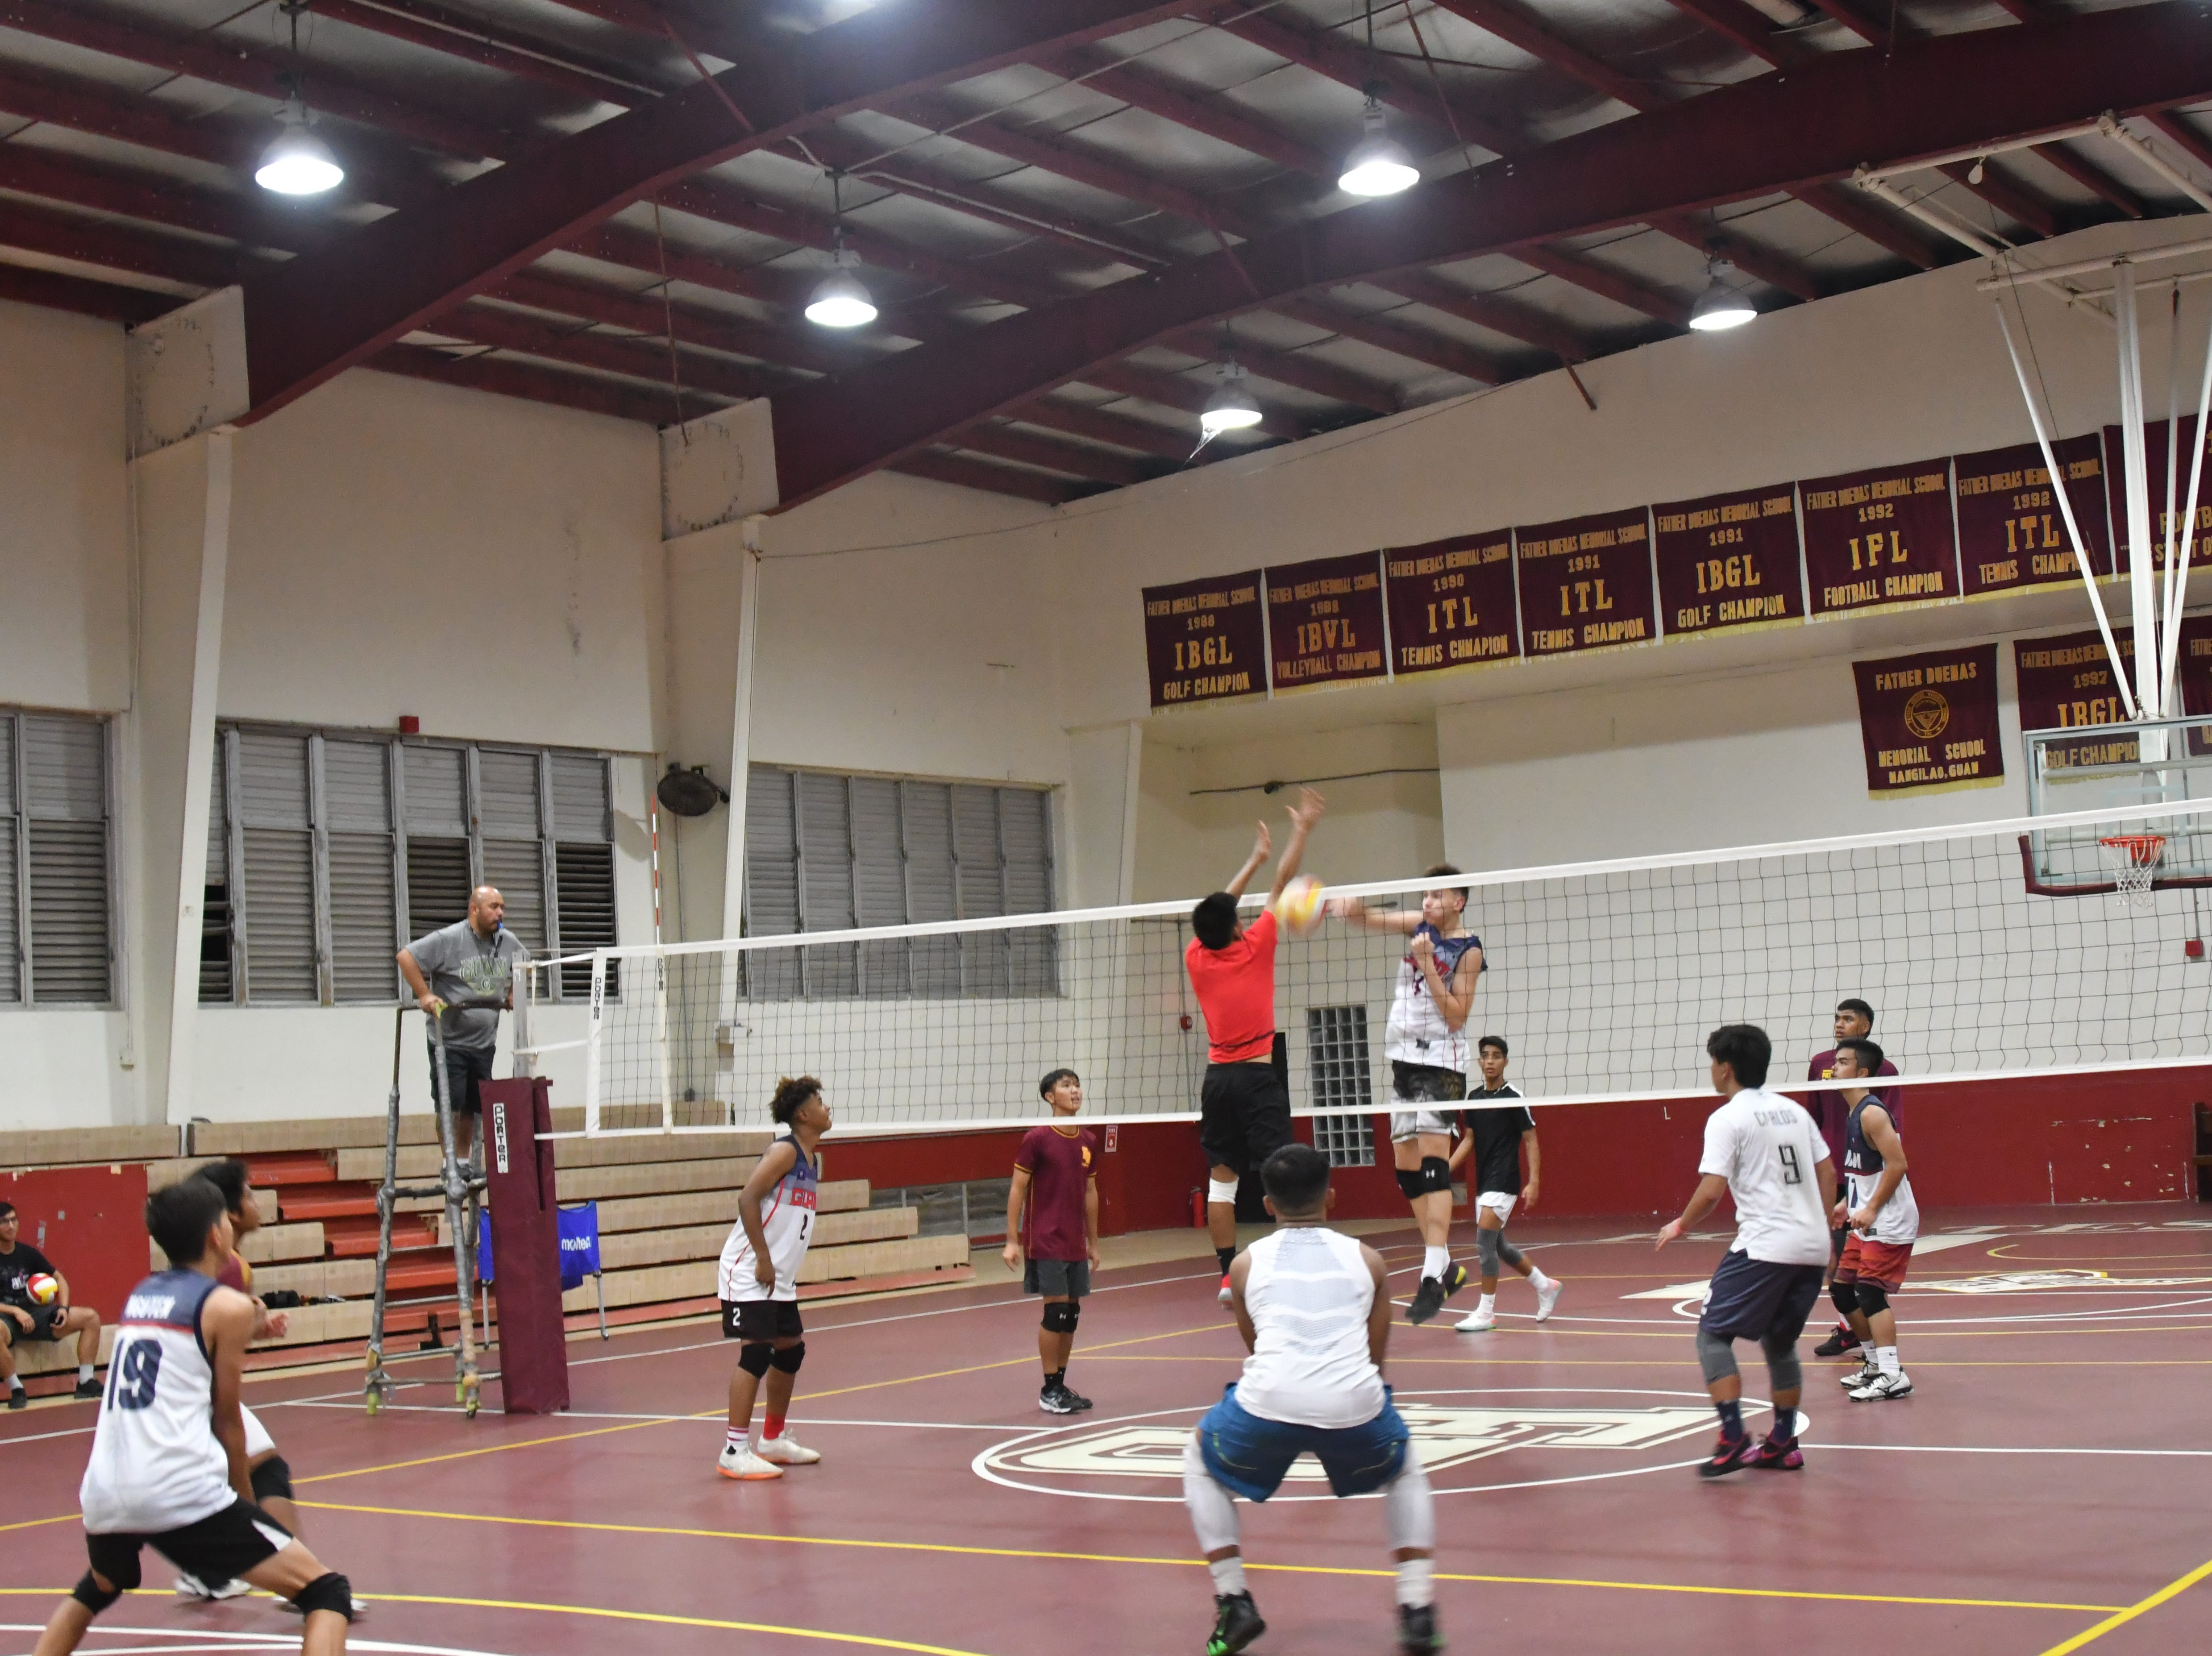 Matthew Fegurgur, center, on far court, spikes a quick set past Rich Salas during practice at Father Duenas on March 28.